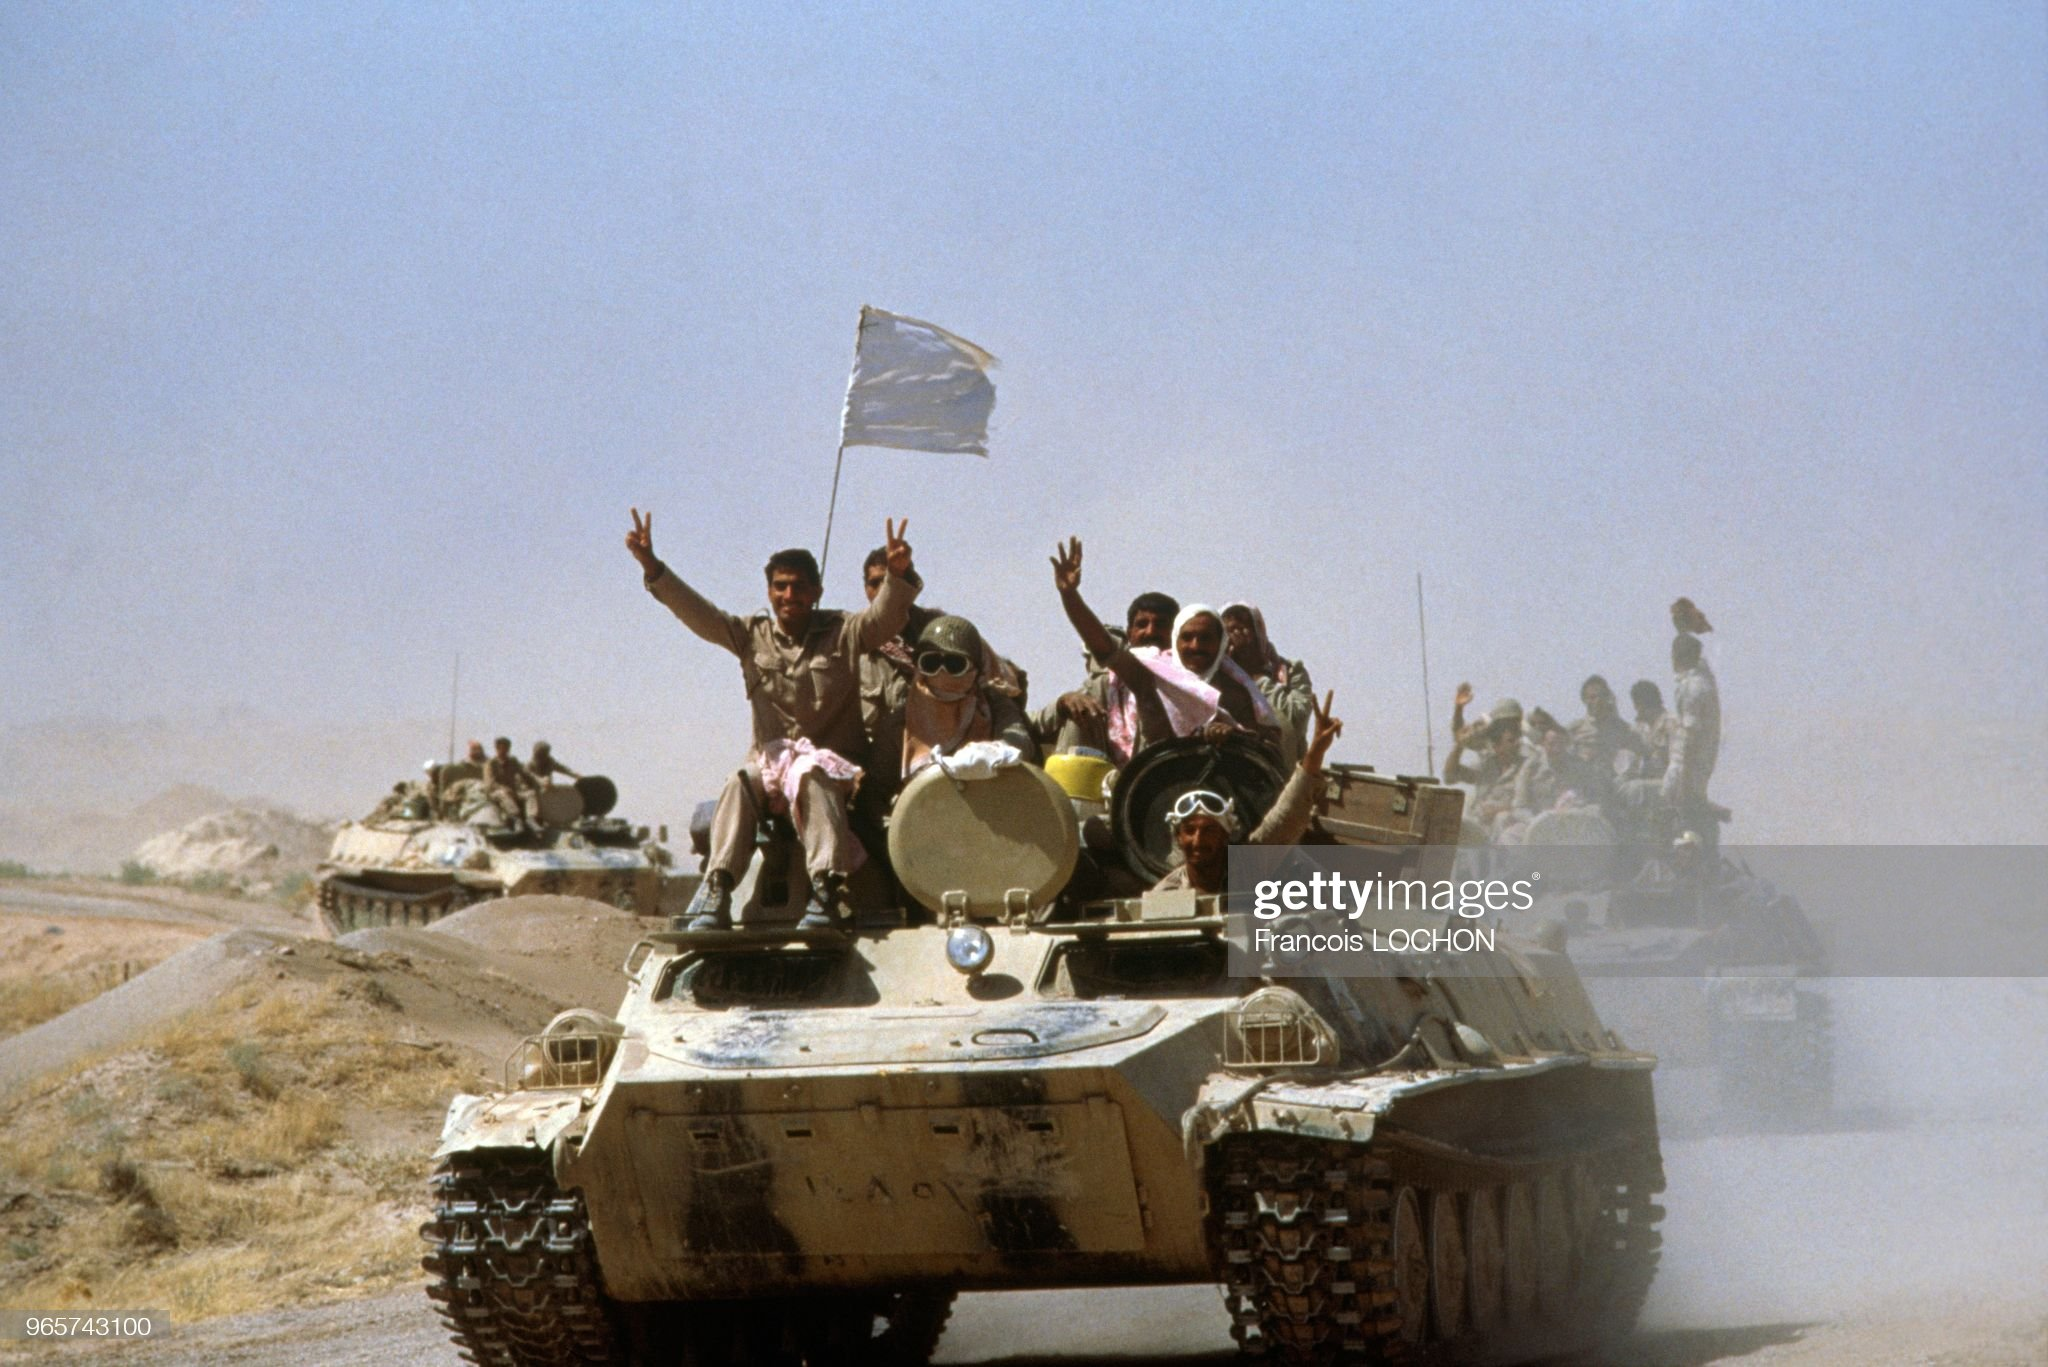 https://media.gettyimages.com/photos/iraqi-soldiers-on-iranian-tanks-the-day-of-ceasefire-of-iran-iraq-war-picture-id965743100?s=2048x2048